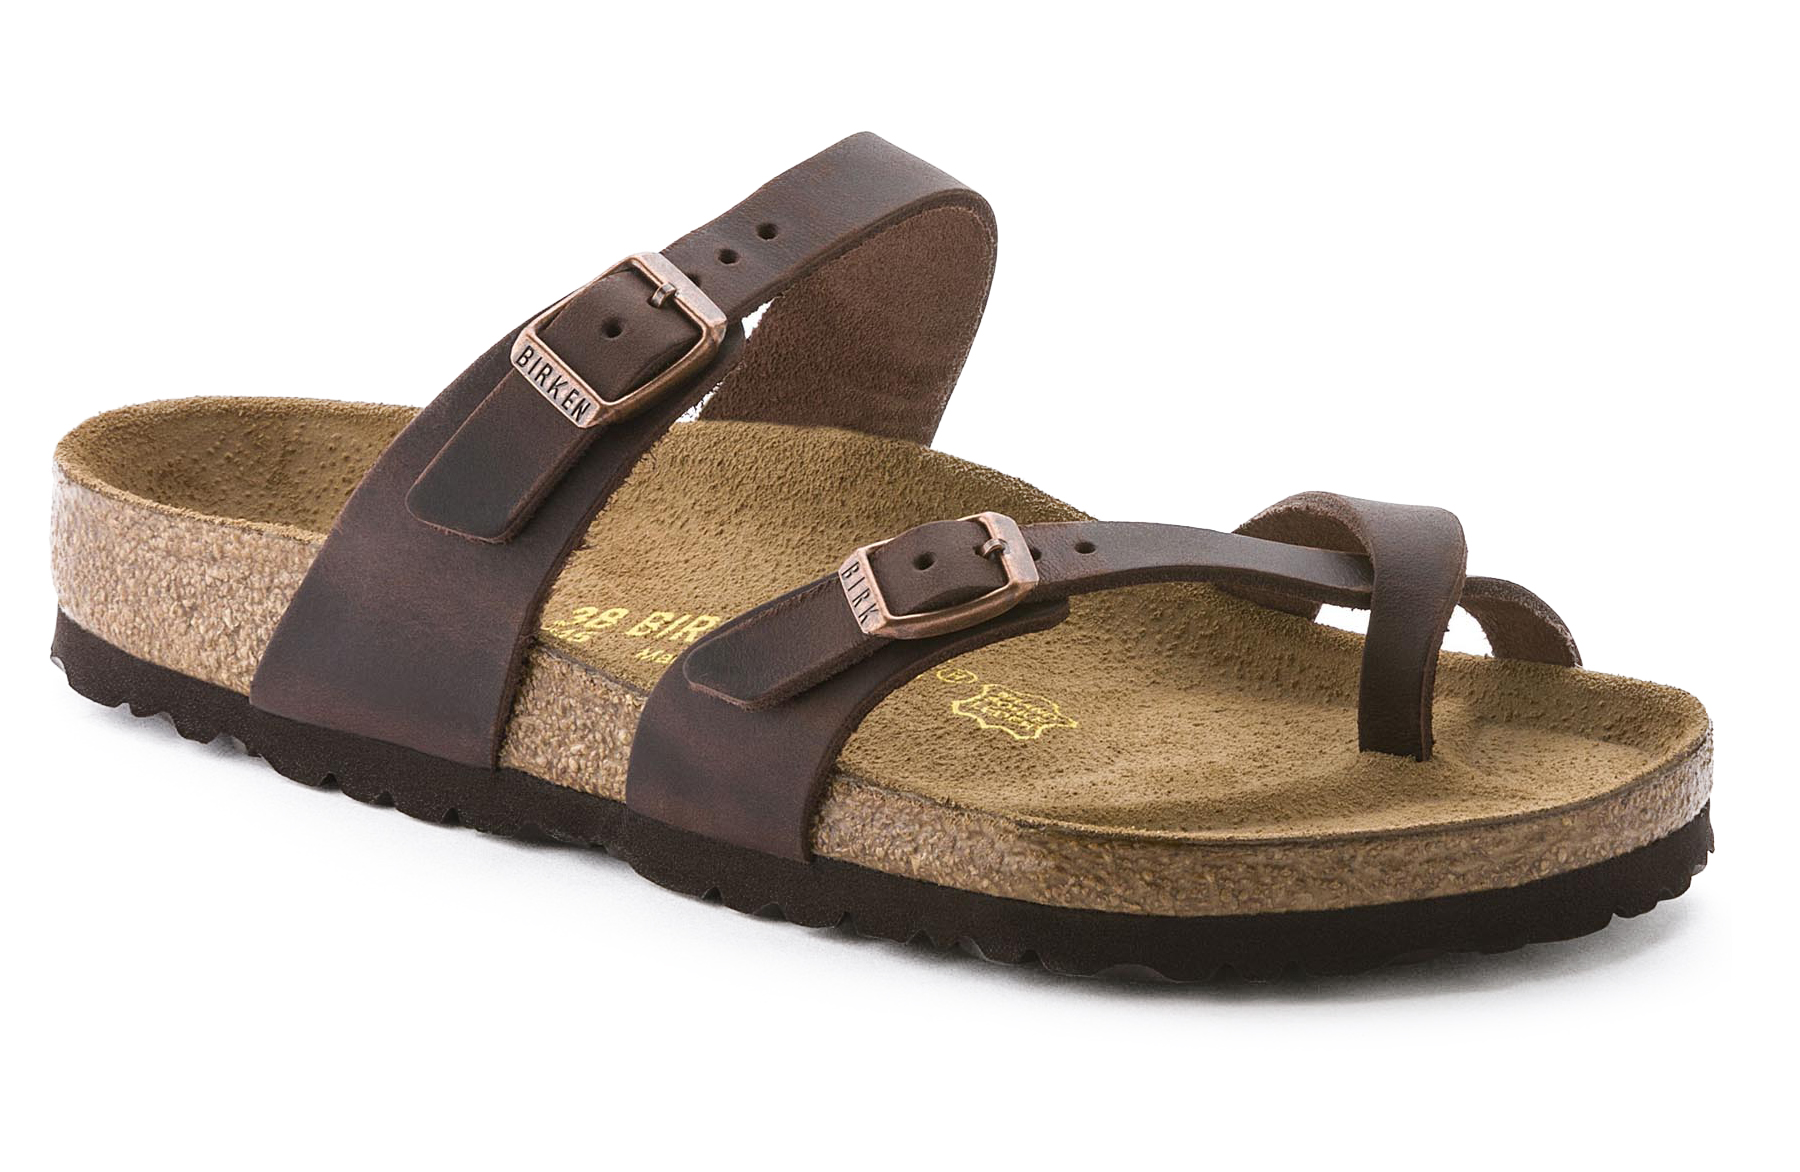 c55eebcfe497 Birkenstock Mayari Leather Sandals - Women s